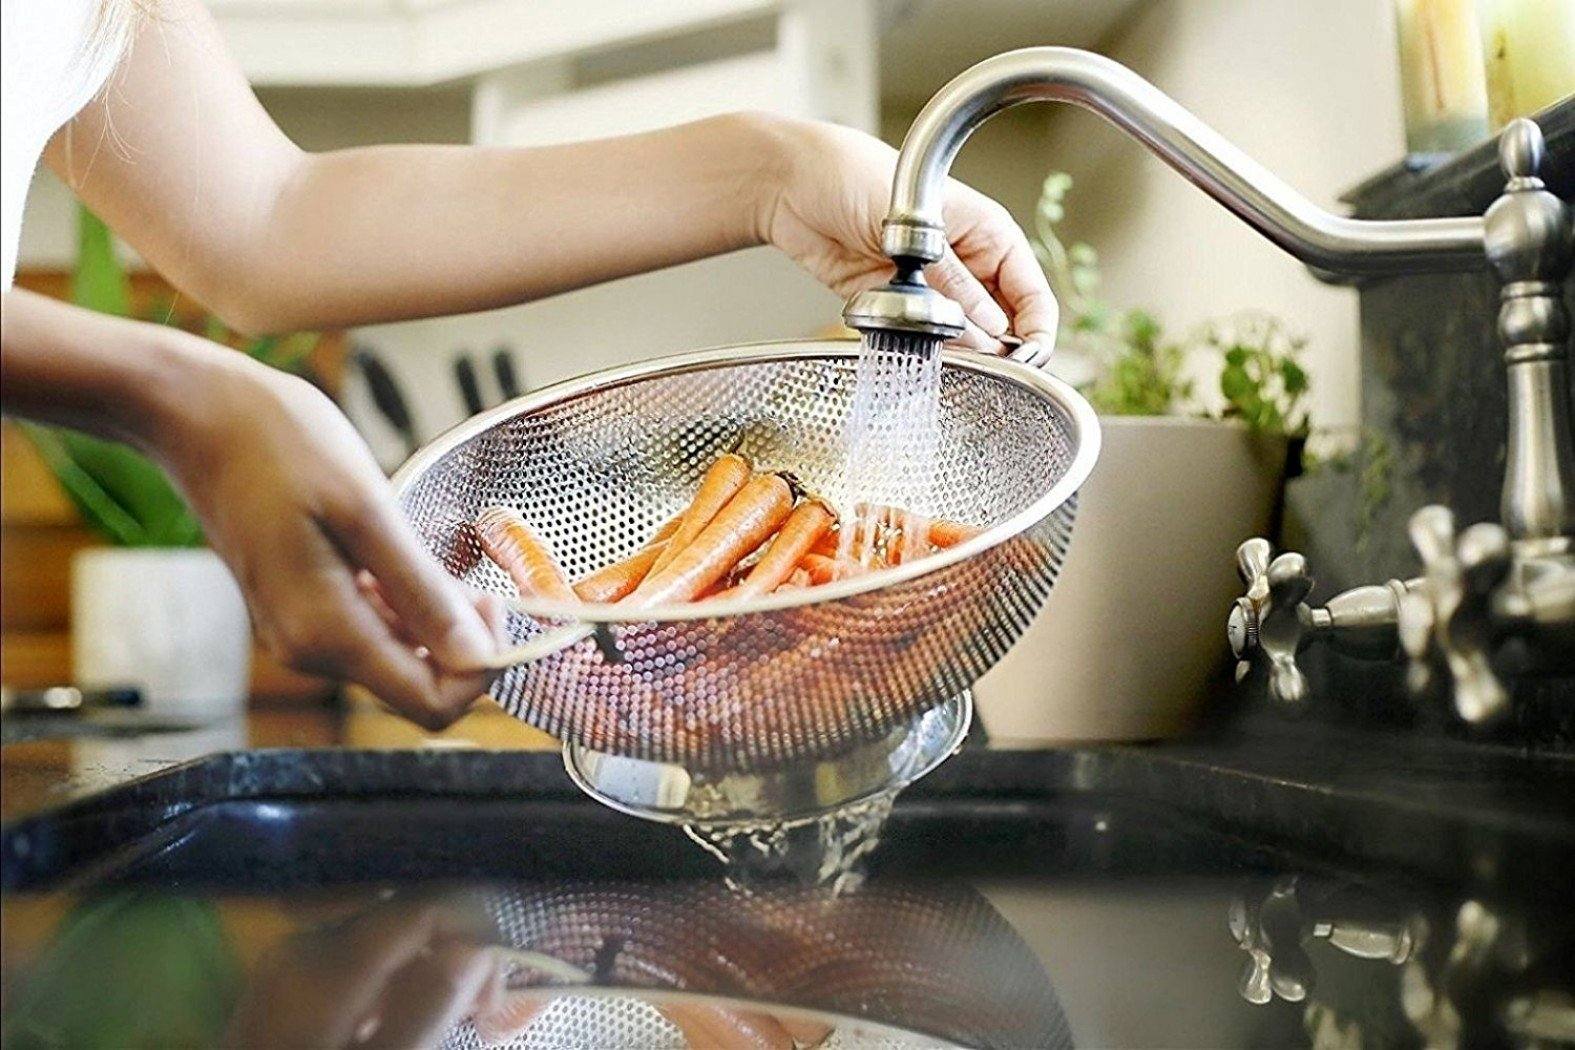 PriorityChef Colander, Stainless Steel 3 Qrt Kitchen Strainer With Large Stable Base by Priority Chef (Image #5)